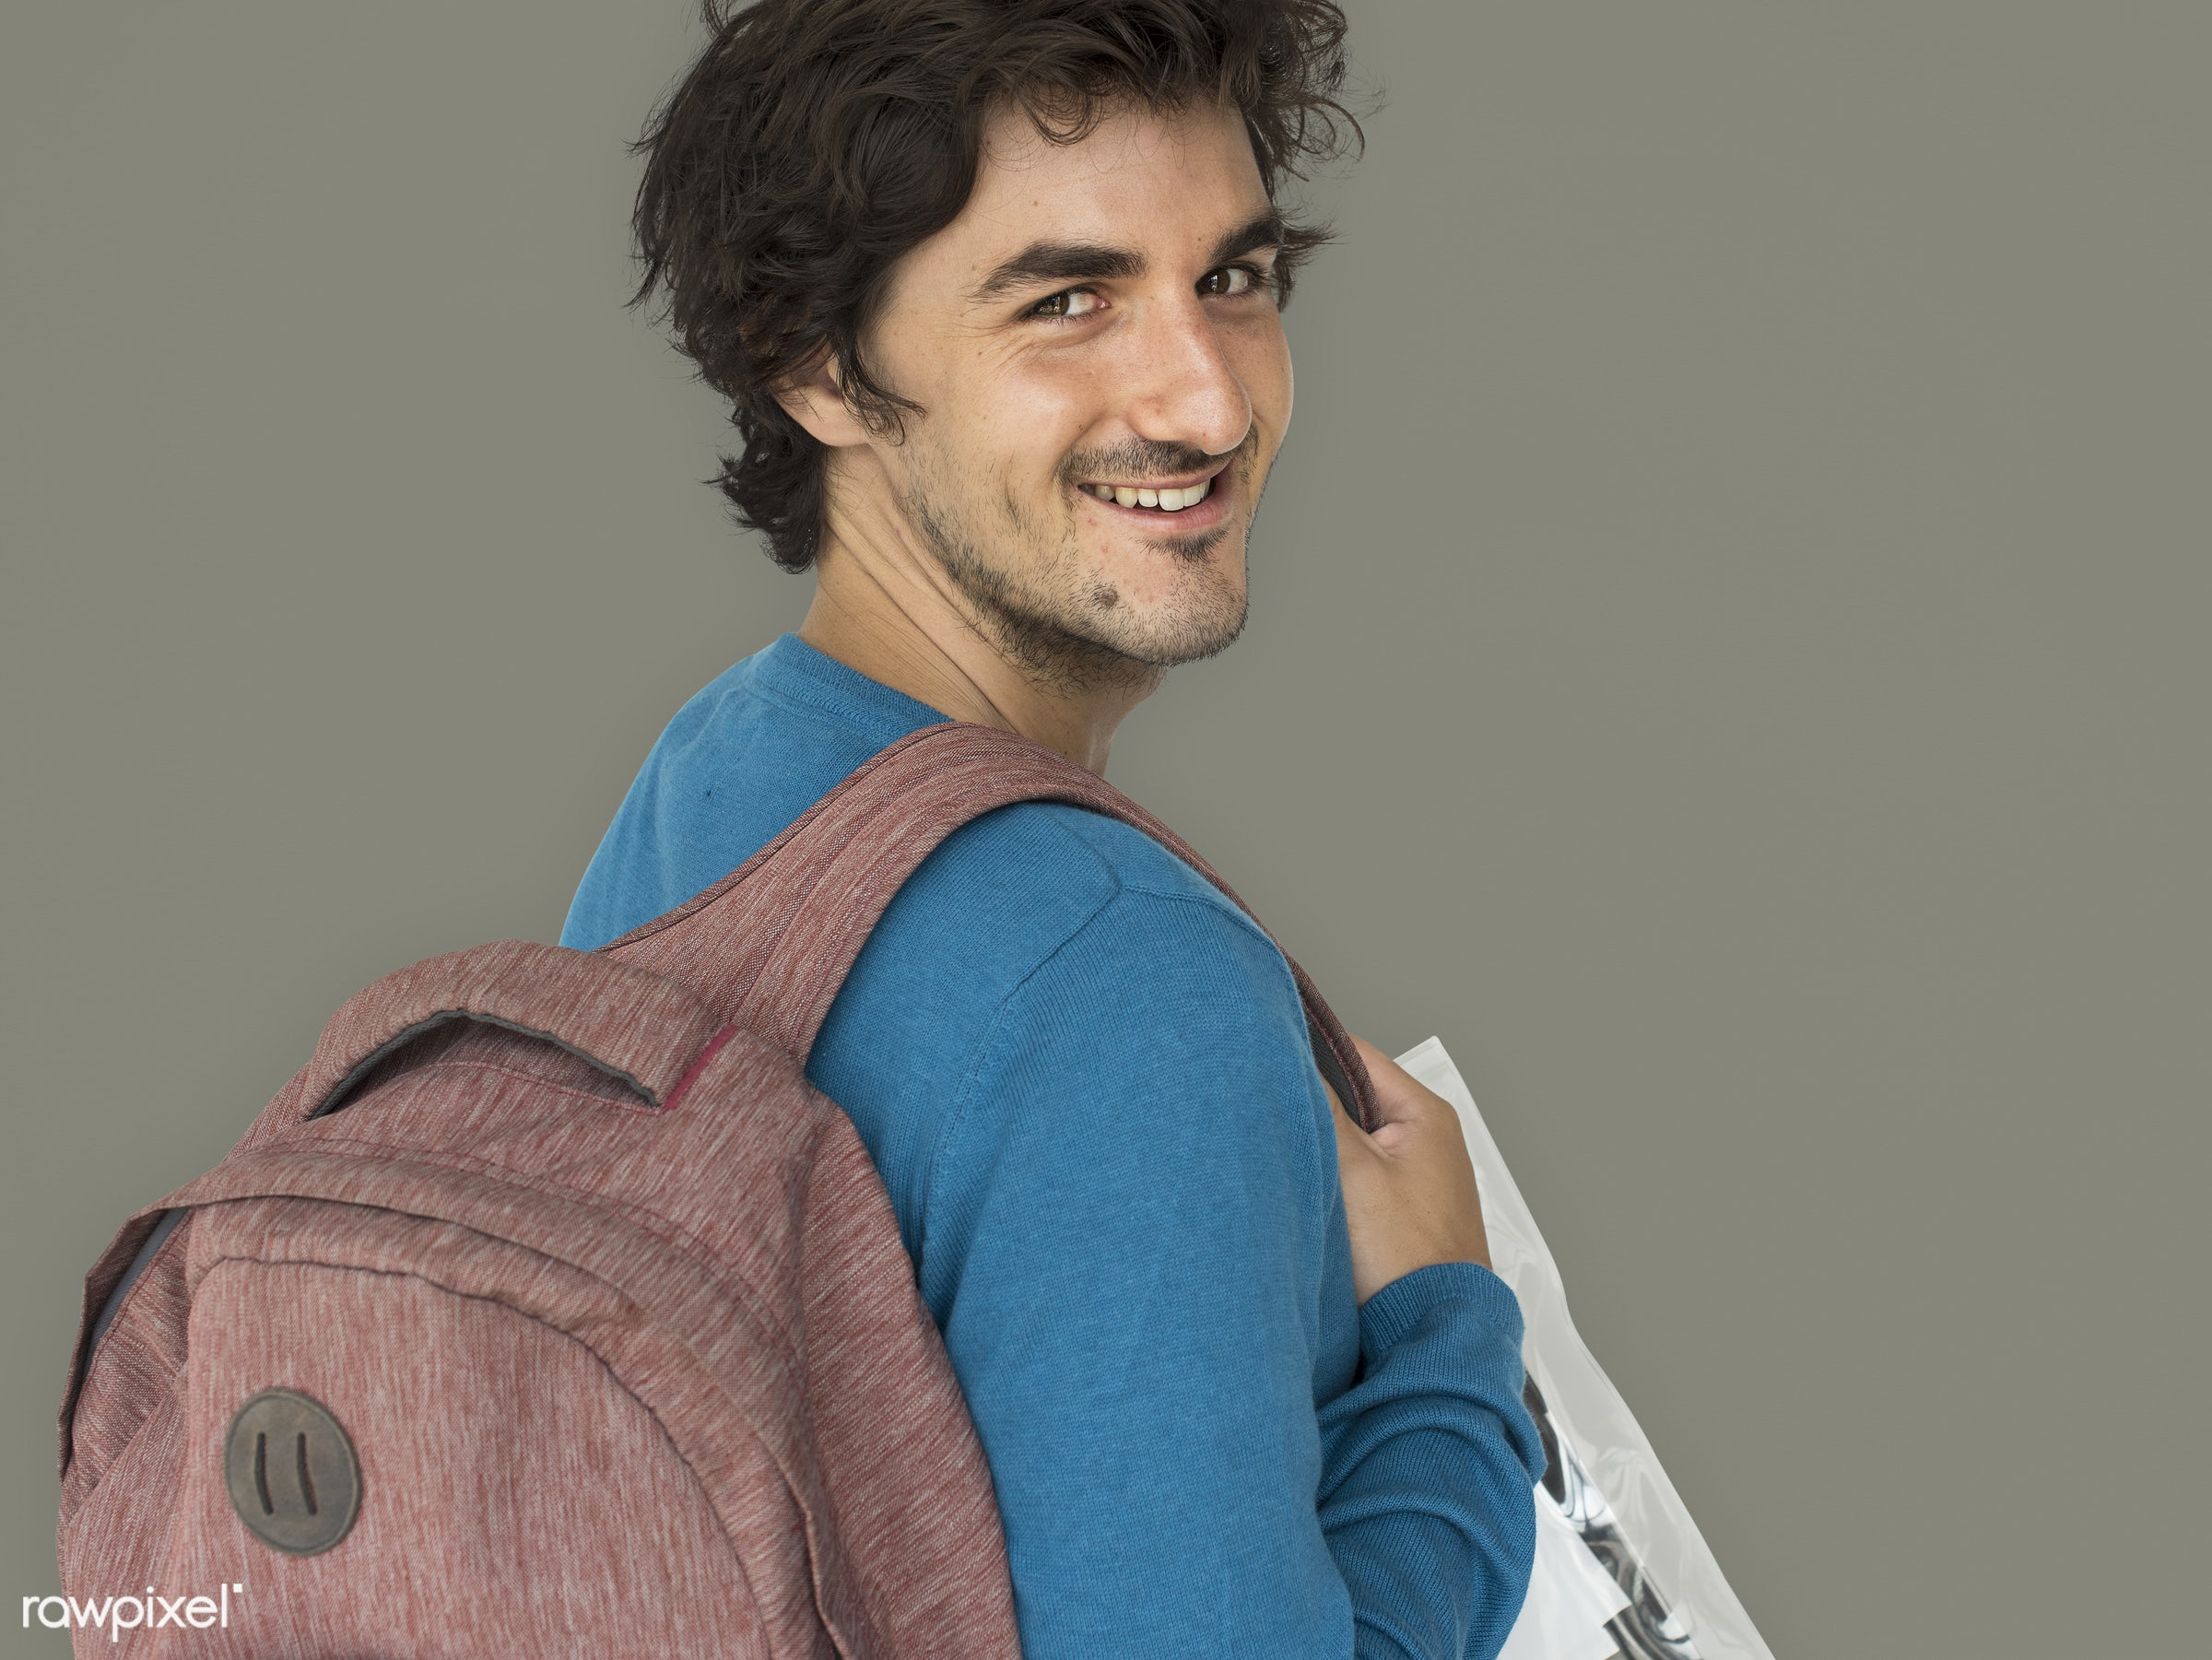 studio, expression, pastel, person, people, caucasian, lifestyle, schoolbag, positive, smile, cheerful, isolated, earth...